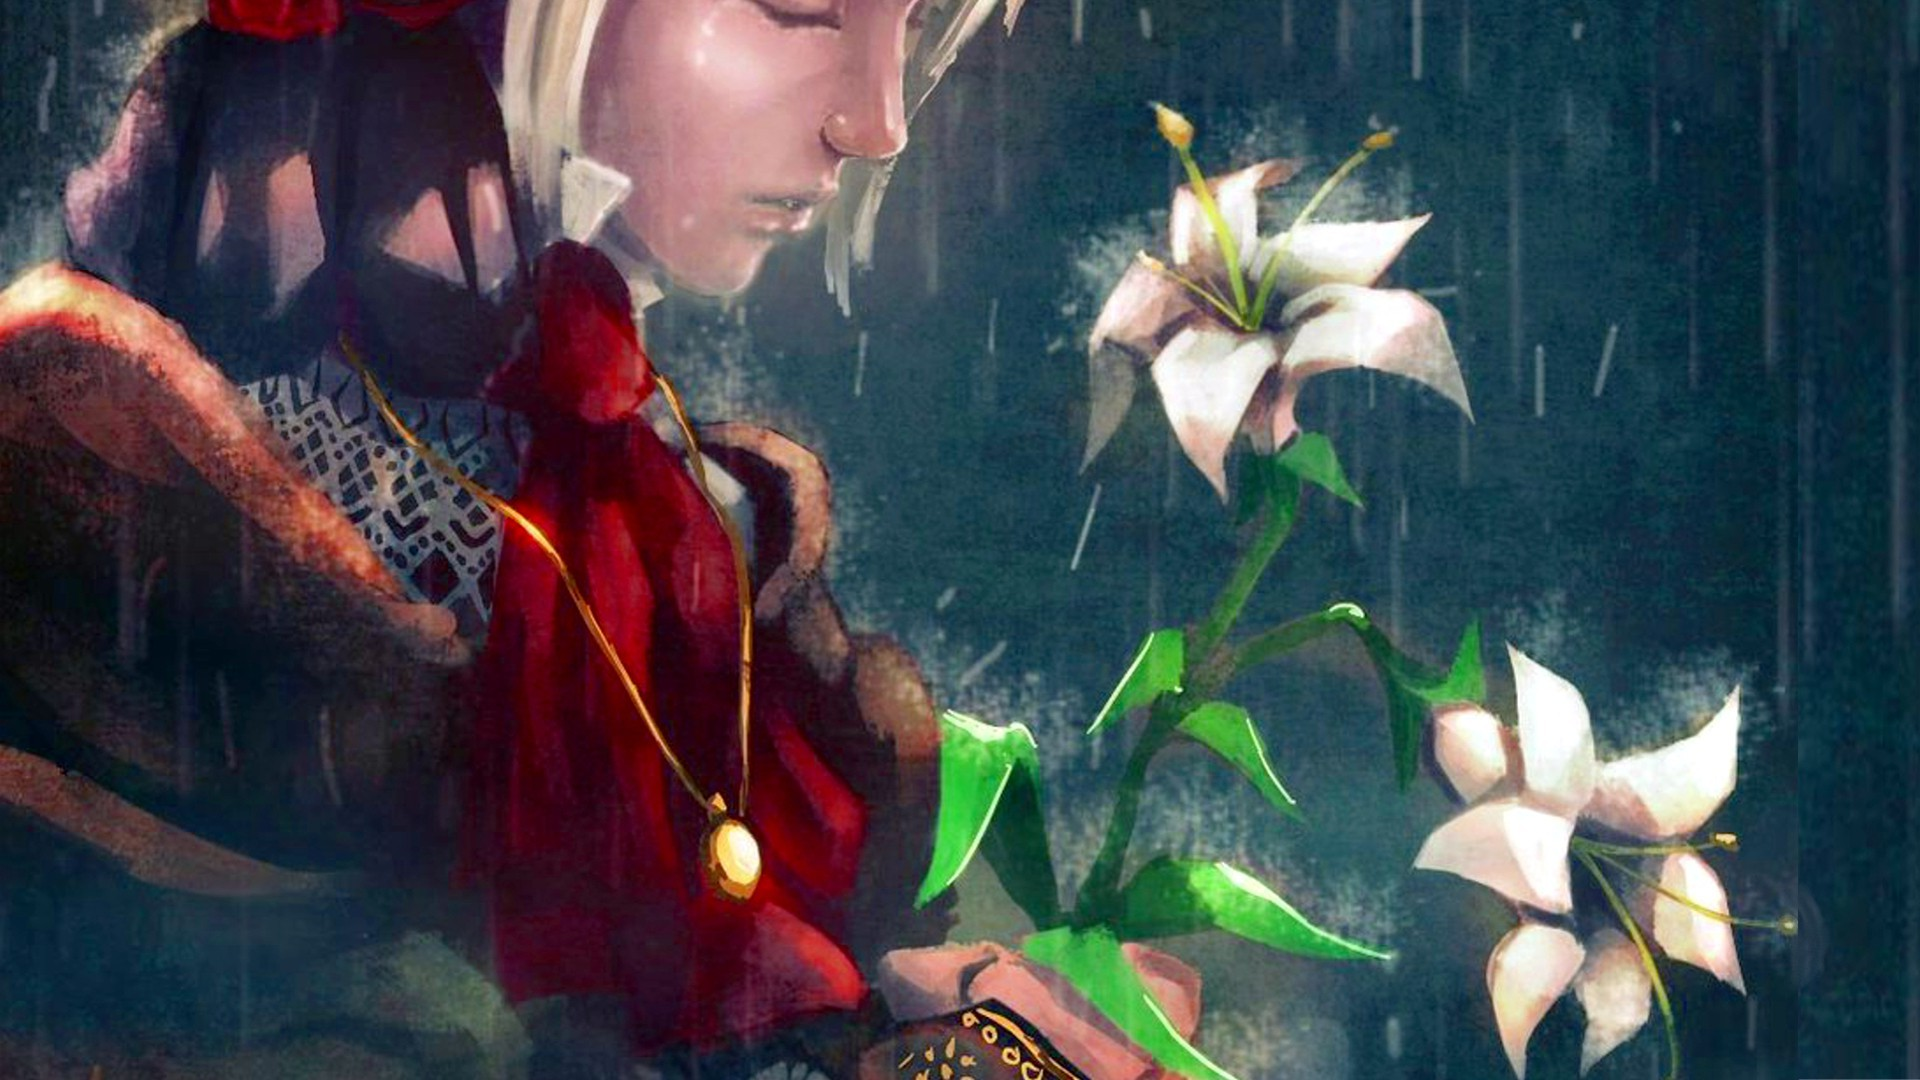 Sad Boy And Girl Full Hd Wallpaper Doll Flowers Women Rain Crying Wallpapers Hd Desktop